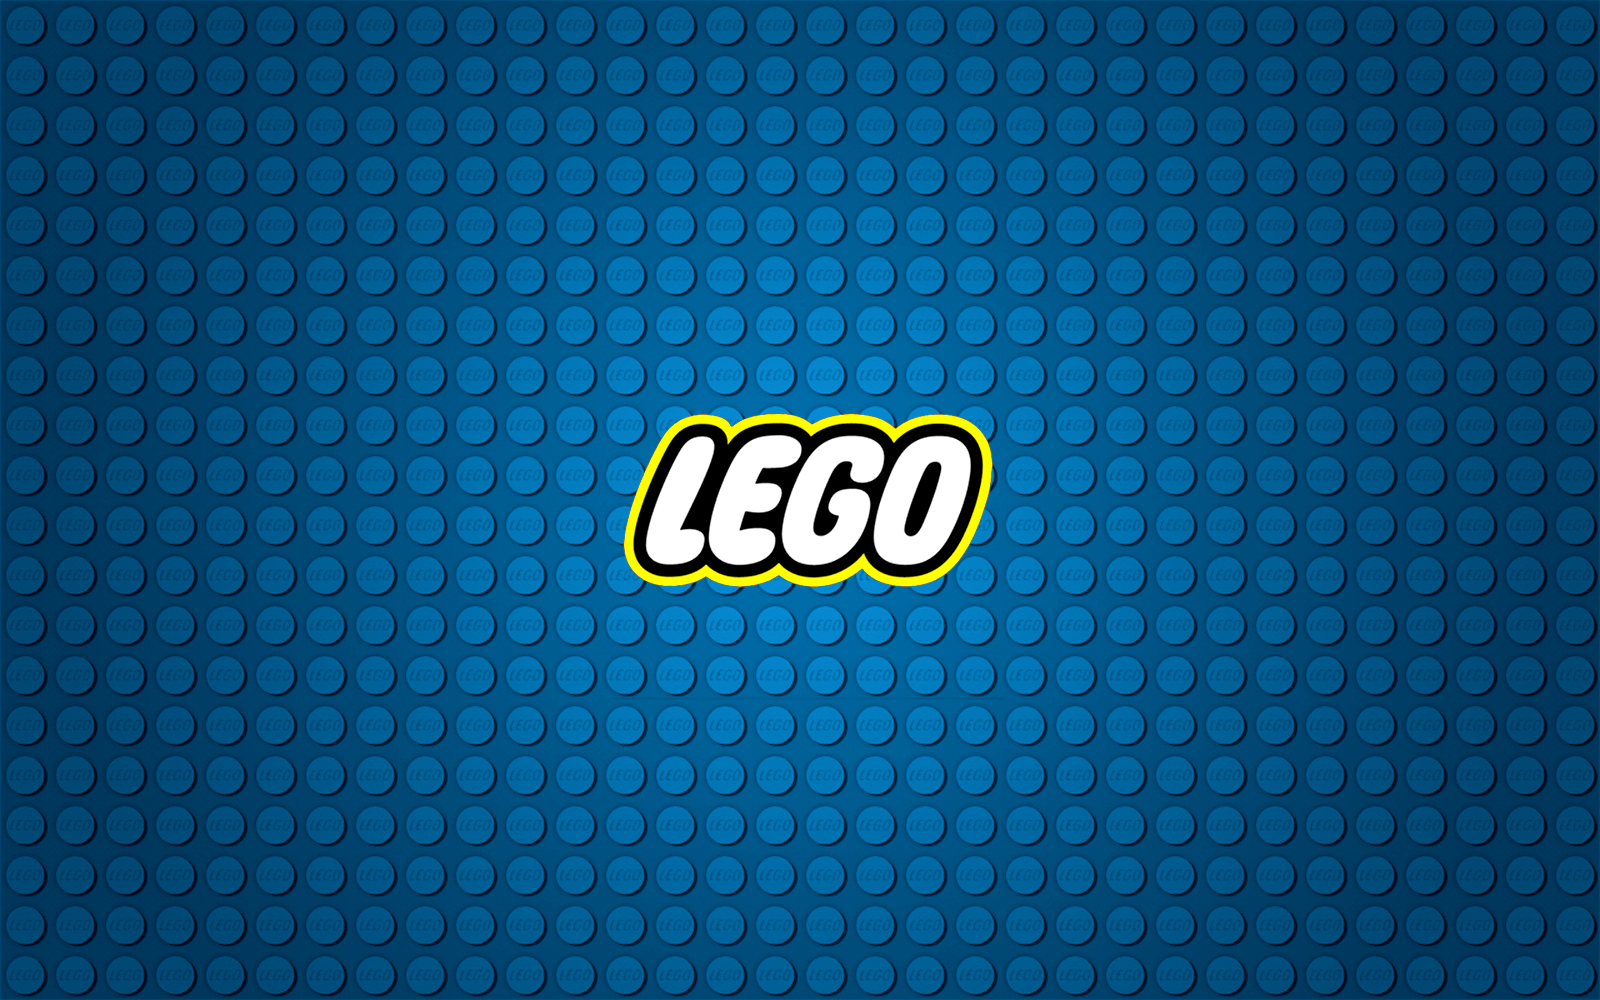 Lego Samples HD Wallpapers Stock Photos Download Wallpapers in HD 1600x1000